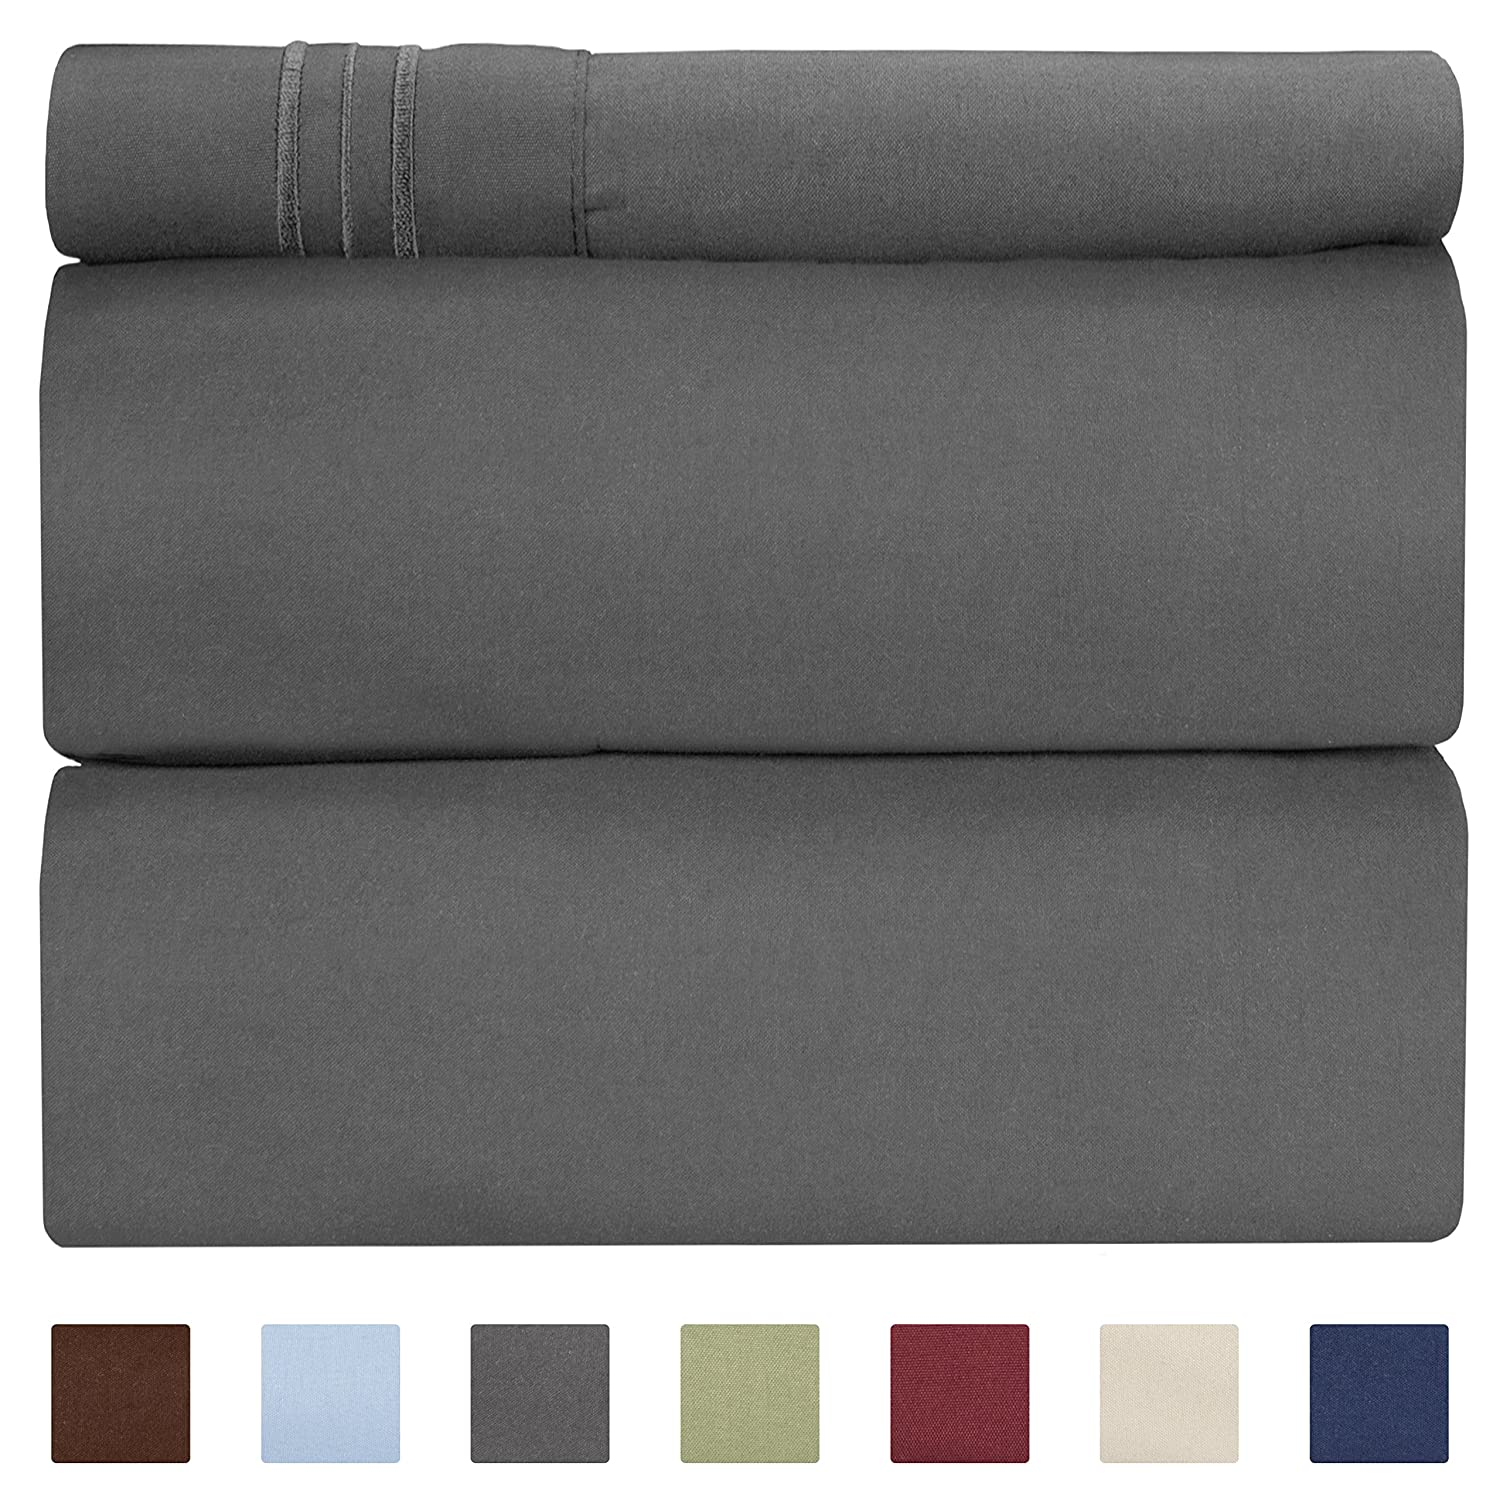 Twin Size Sheet Set - 3 Piece - Hotel Luxury Bed Sheets - Extra Soft - Deep Pockets - Easy Fit - Breathable & Cooling Sheets - Wrinkle Free - Comfy – Dark Grey Bed Sheets – Twins Sheets - 3 PC